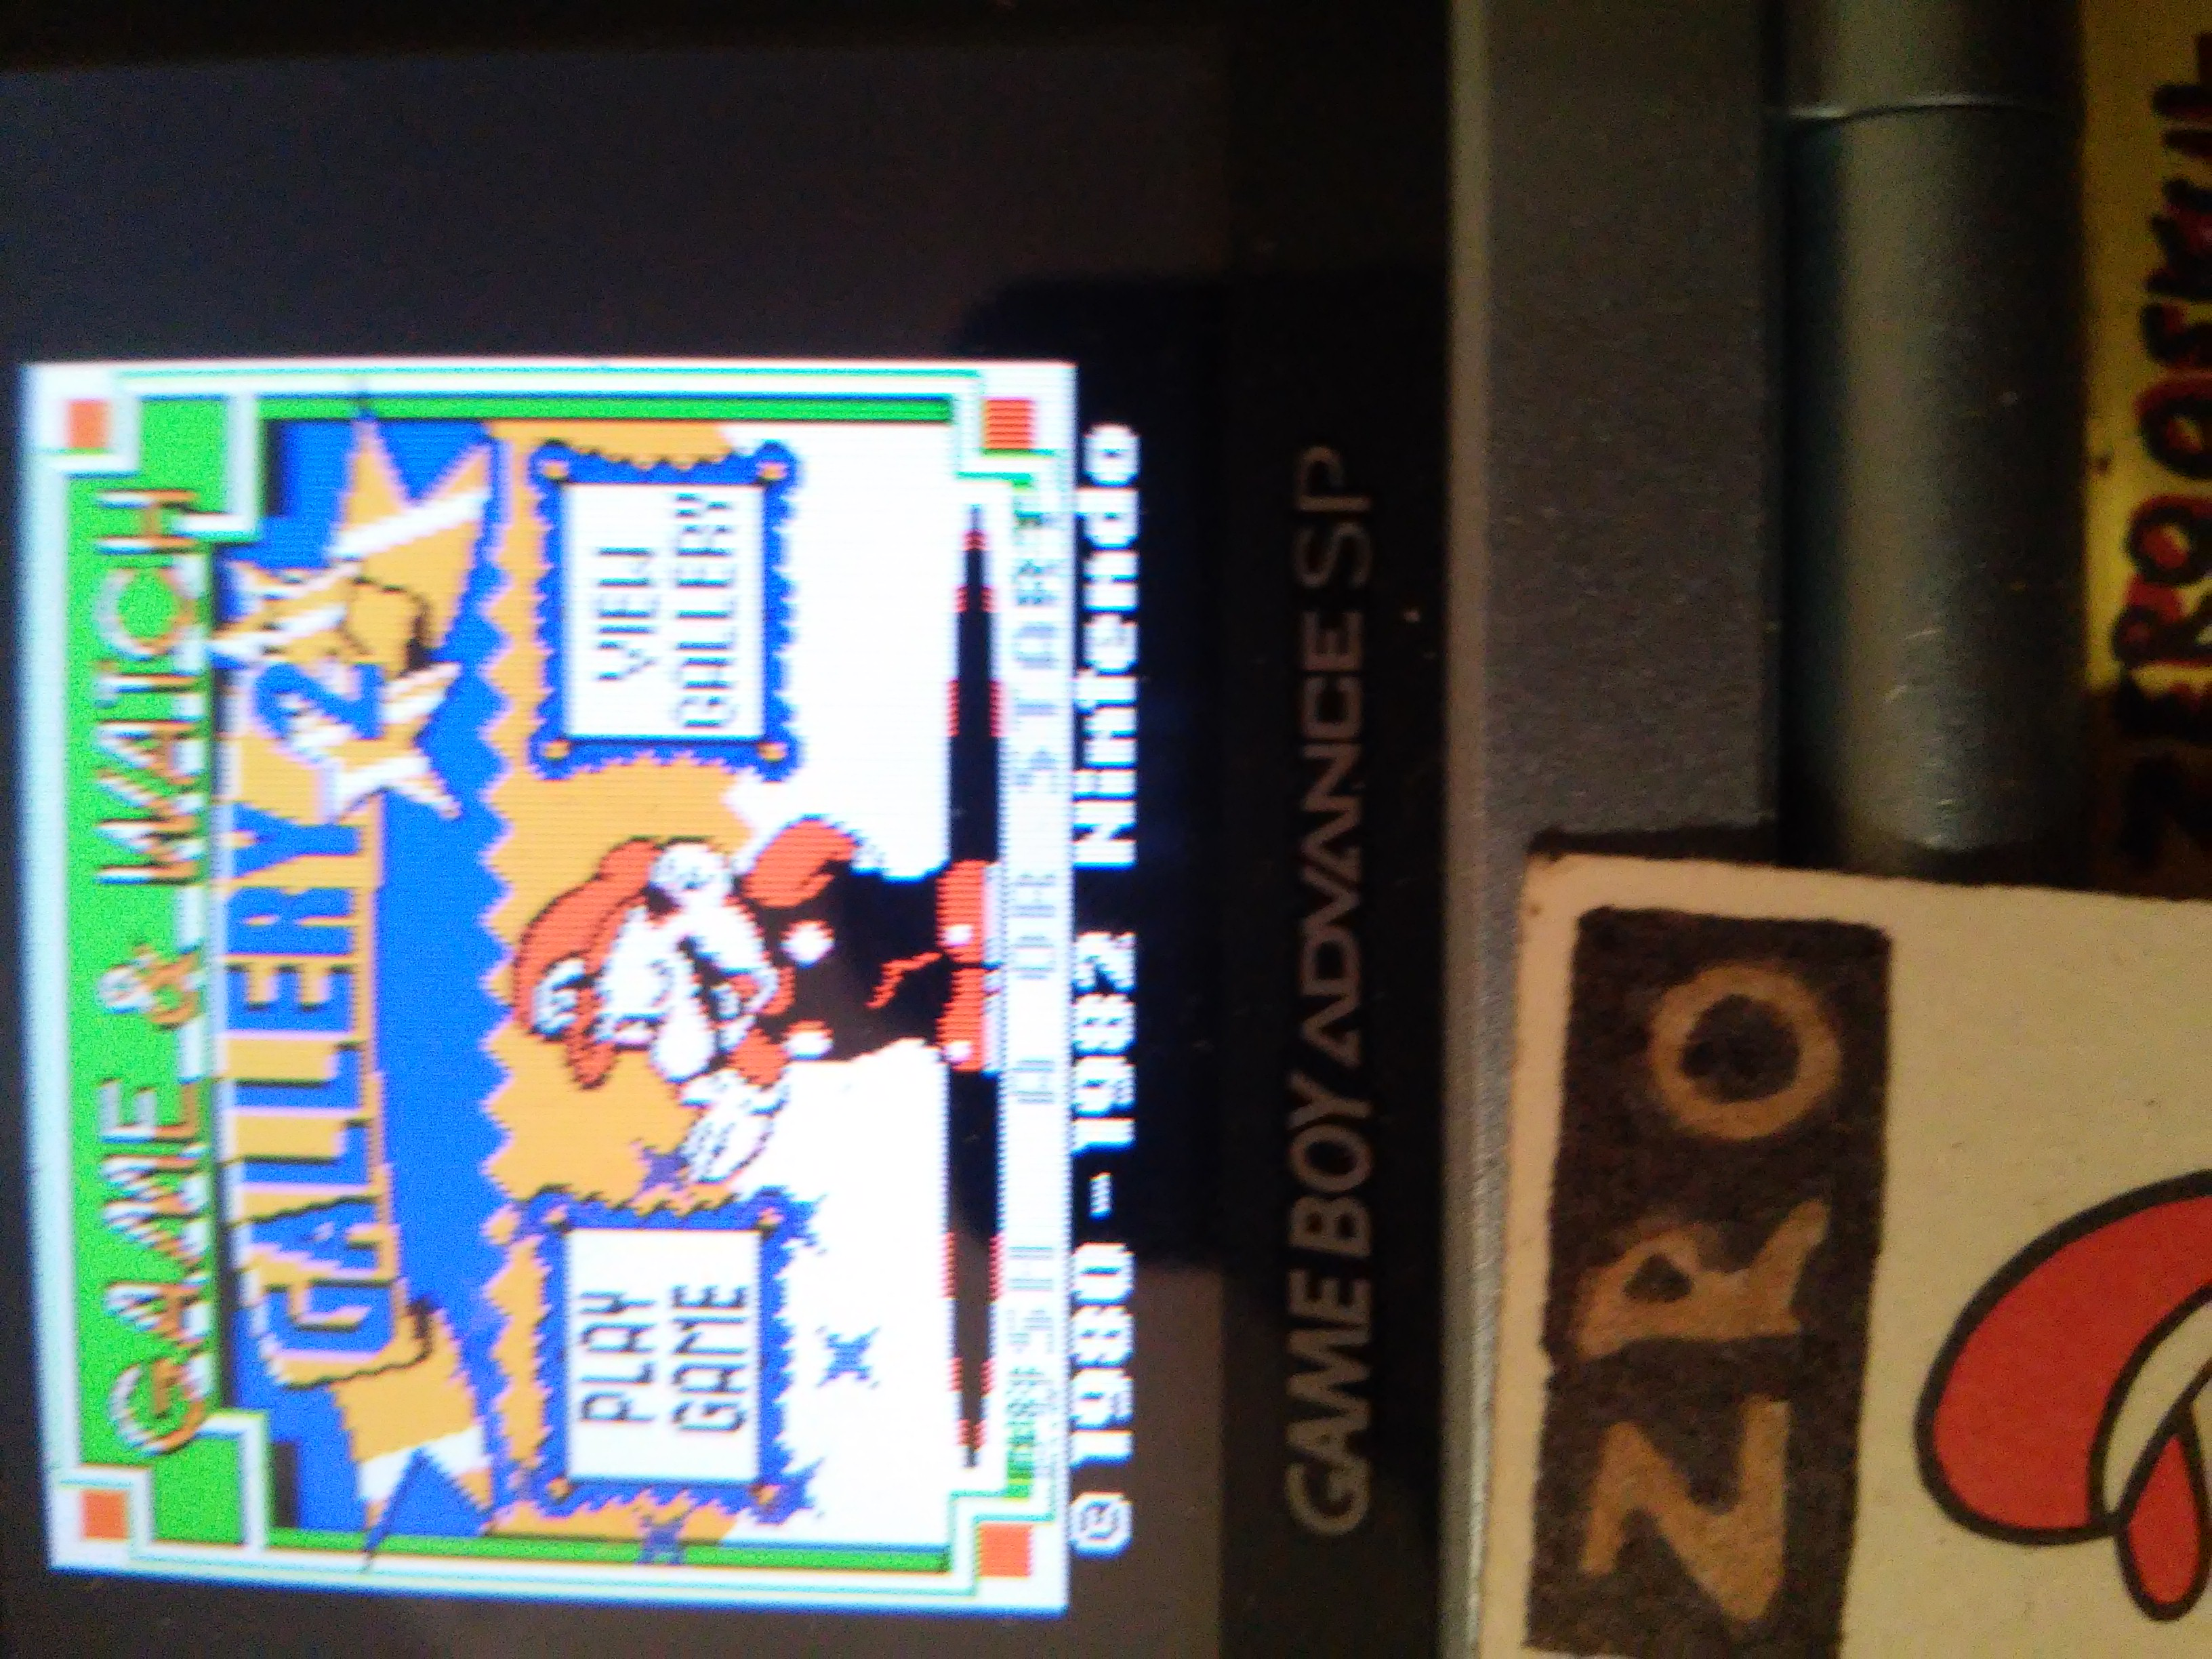 zerooskul: Game & Watch Gallery 2: Parachute: Classic: Easy (Game Boy Color) 881 points on 2019-01-18 18:59:13